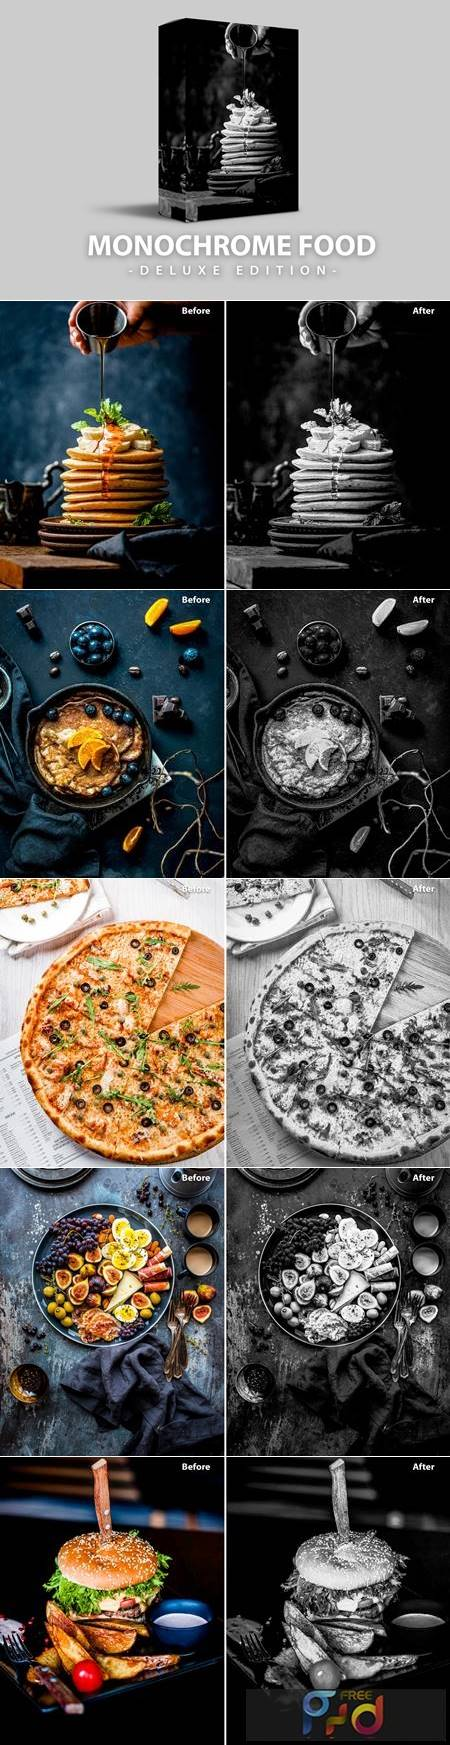 Monochrome Food - Deluxe Edition for Mobile and PC 7S9JSXK 1